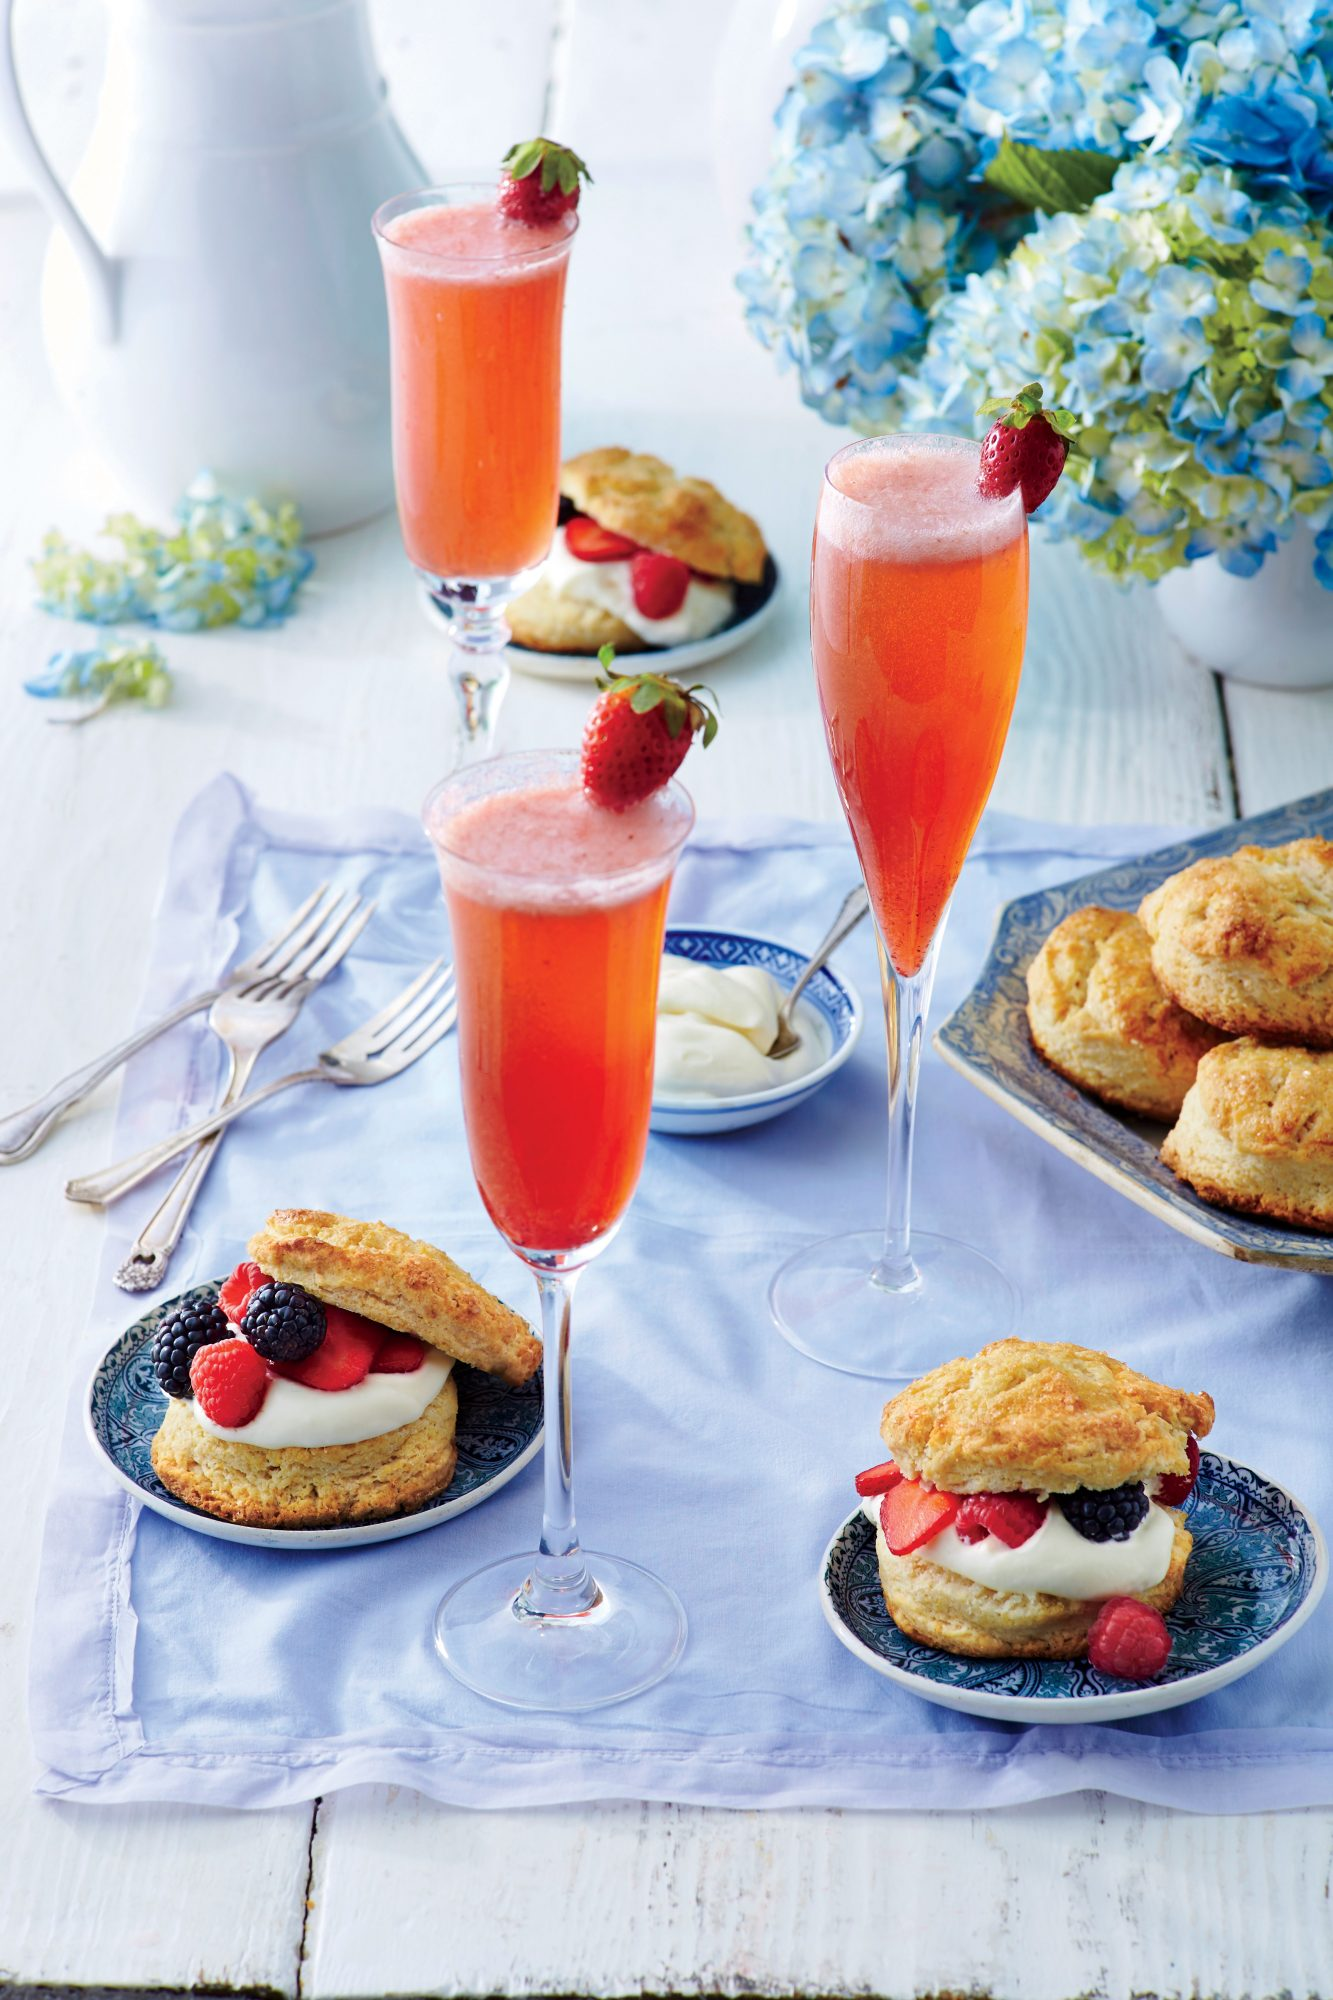 Shortcakes with Lemon Cream Filling